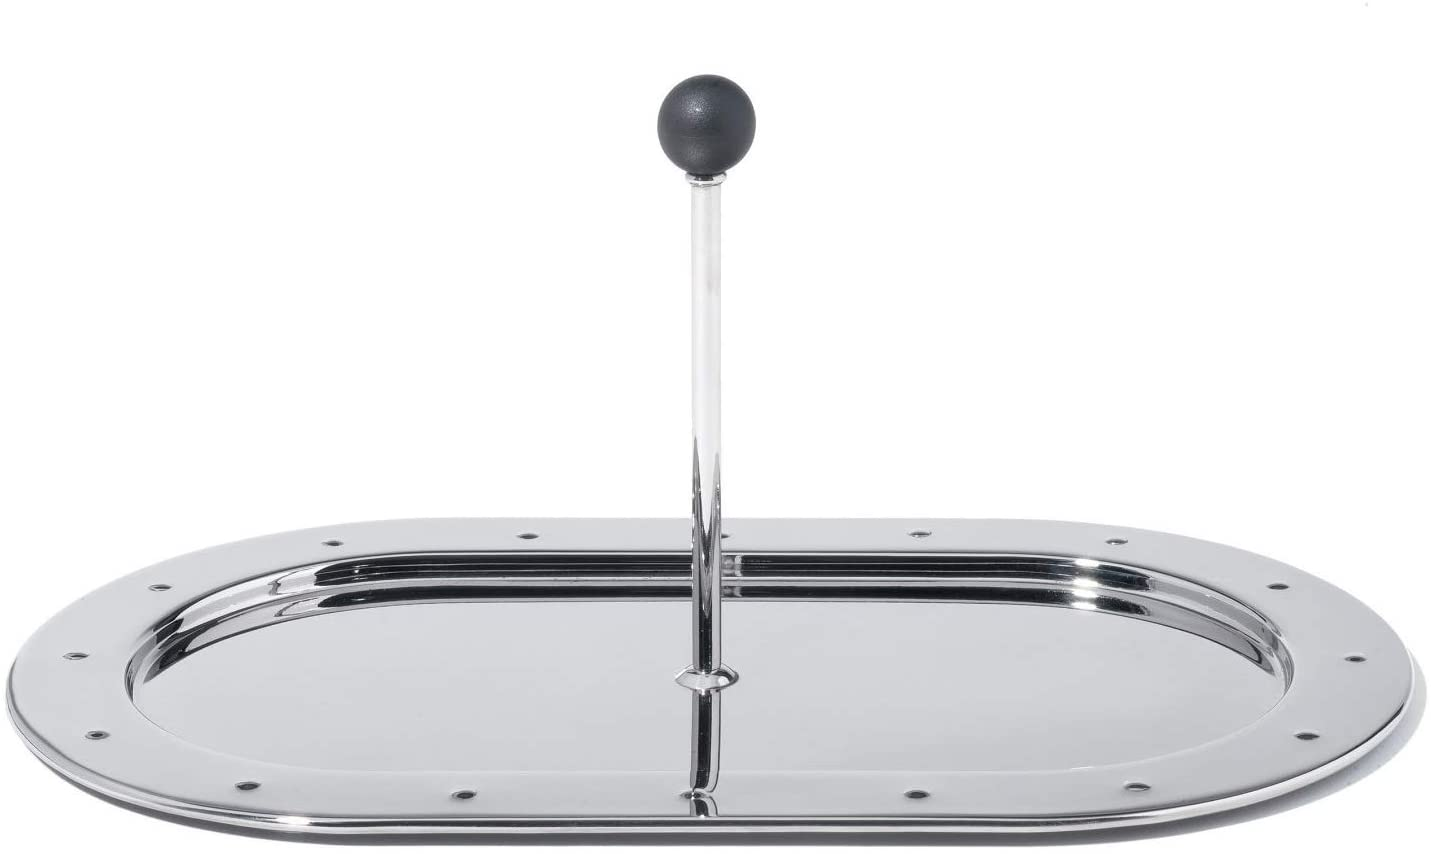 Michael Graves Small Tray Sugar and Cream Caddy by Alessi